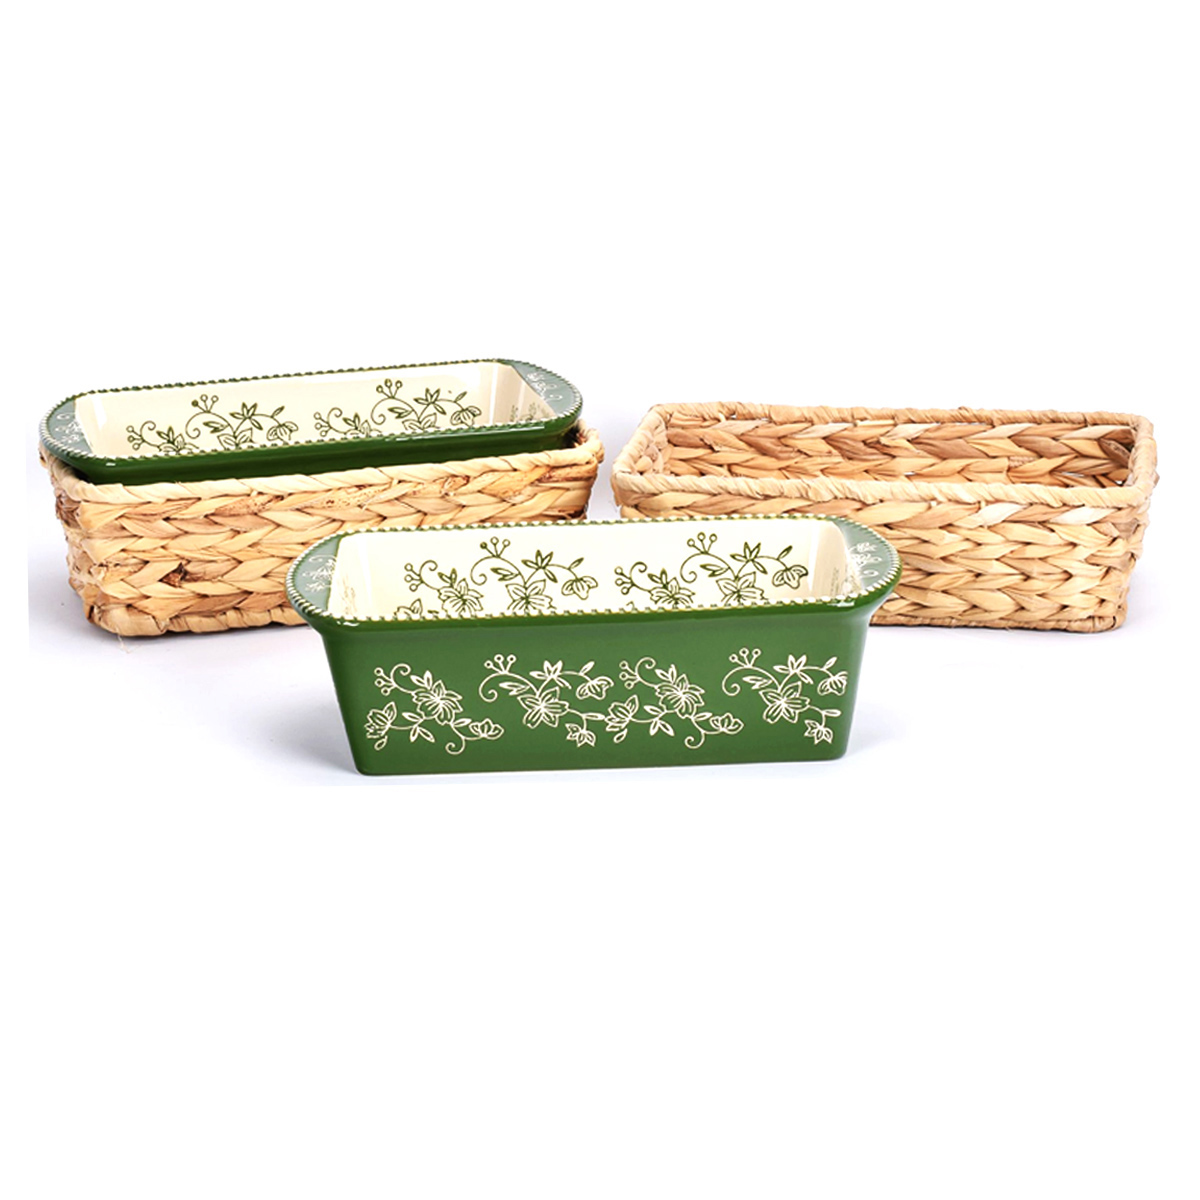 temp-tations® Floral Lace Loaf Pans in Baskets – 4 Piece – Green